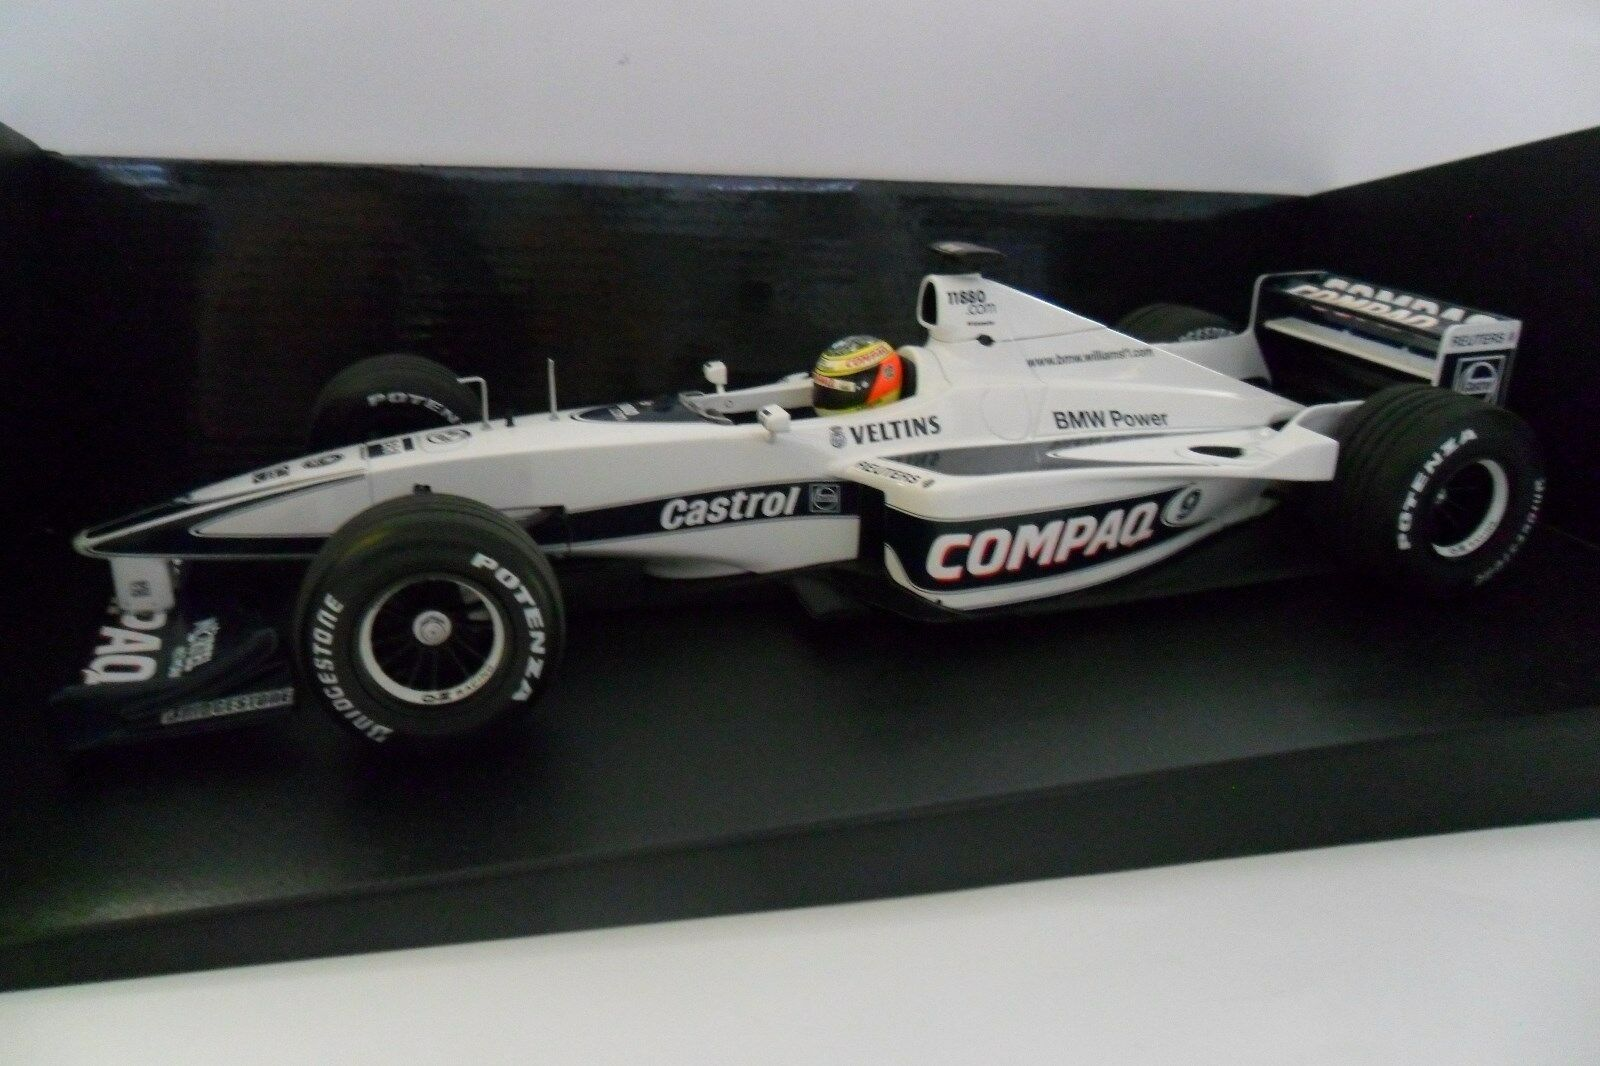 MINICHAMPS 1 18 F1 WILLIAMS BMW FW 22 RALF SCHUMACHER 2000  ART 180 000029